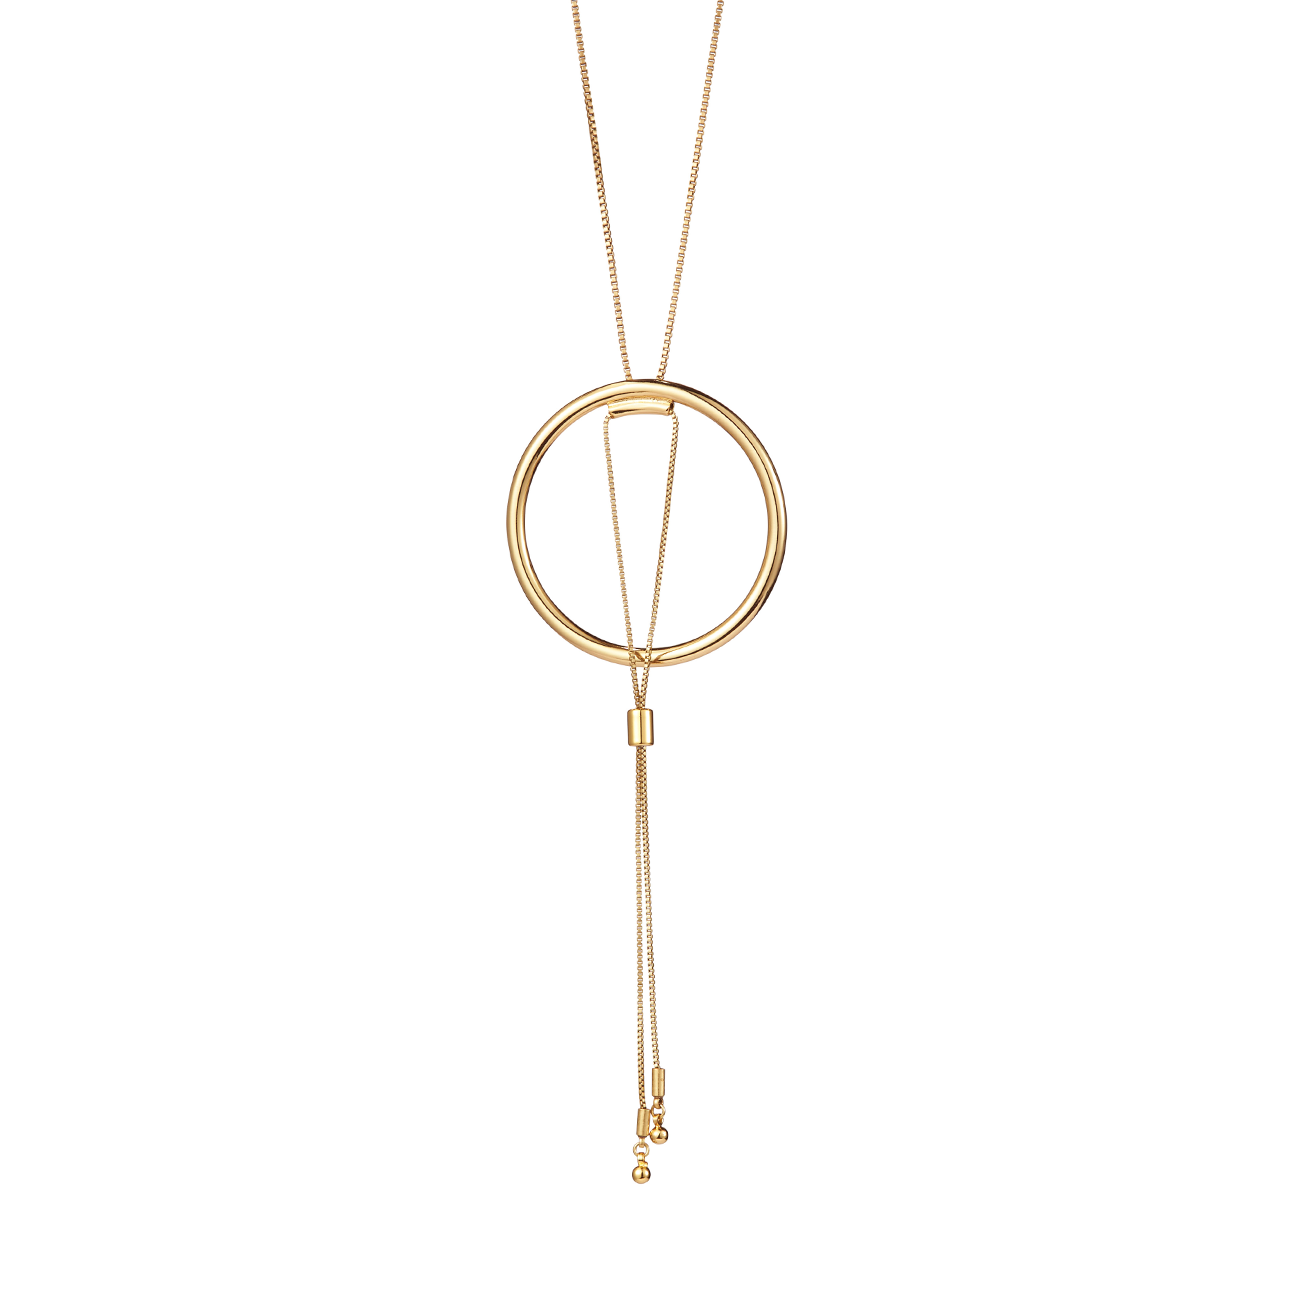 Gold adjustable Sadie Pendant necklace by Jenny Bird.